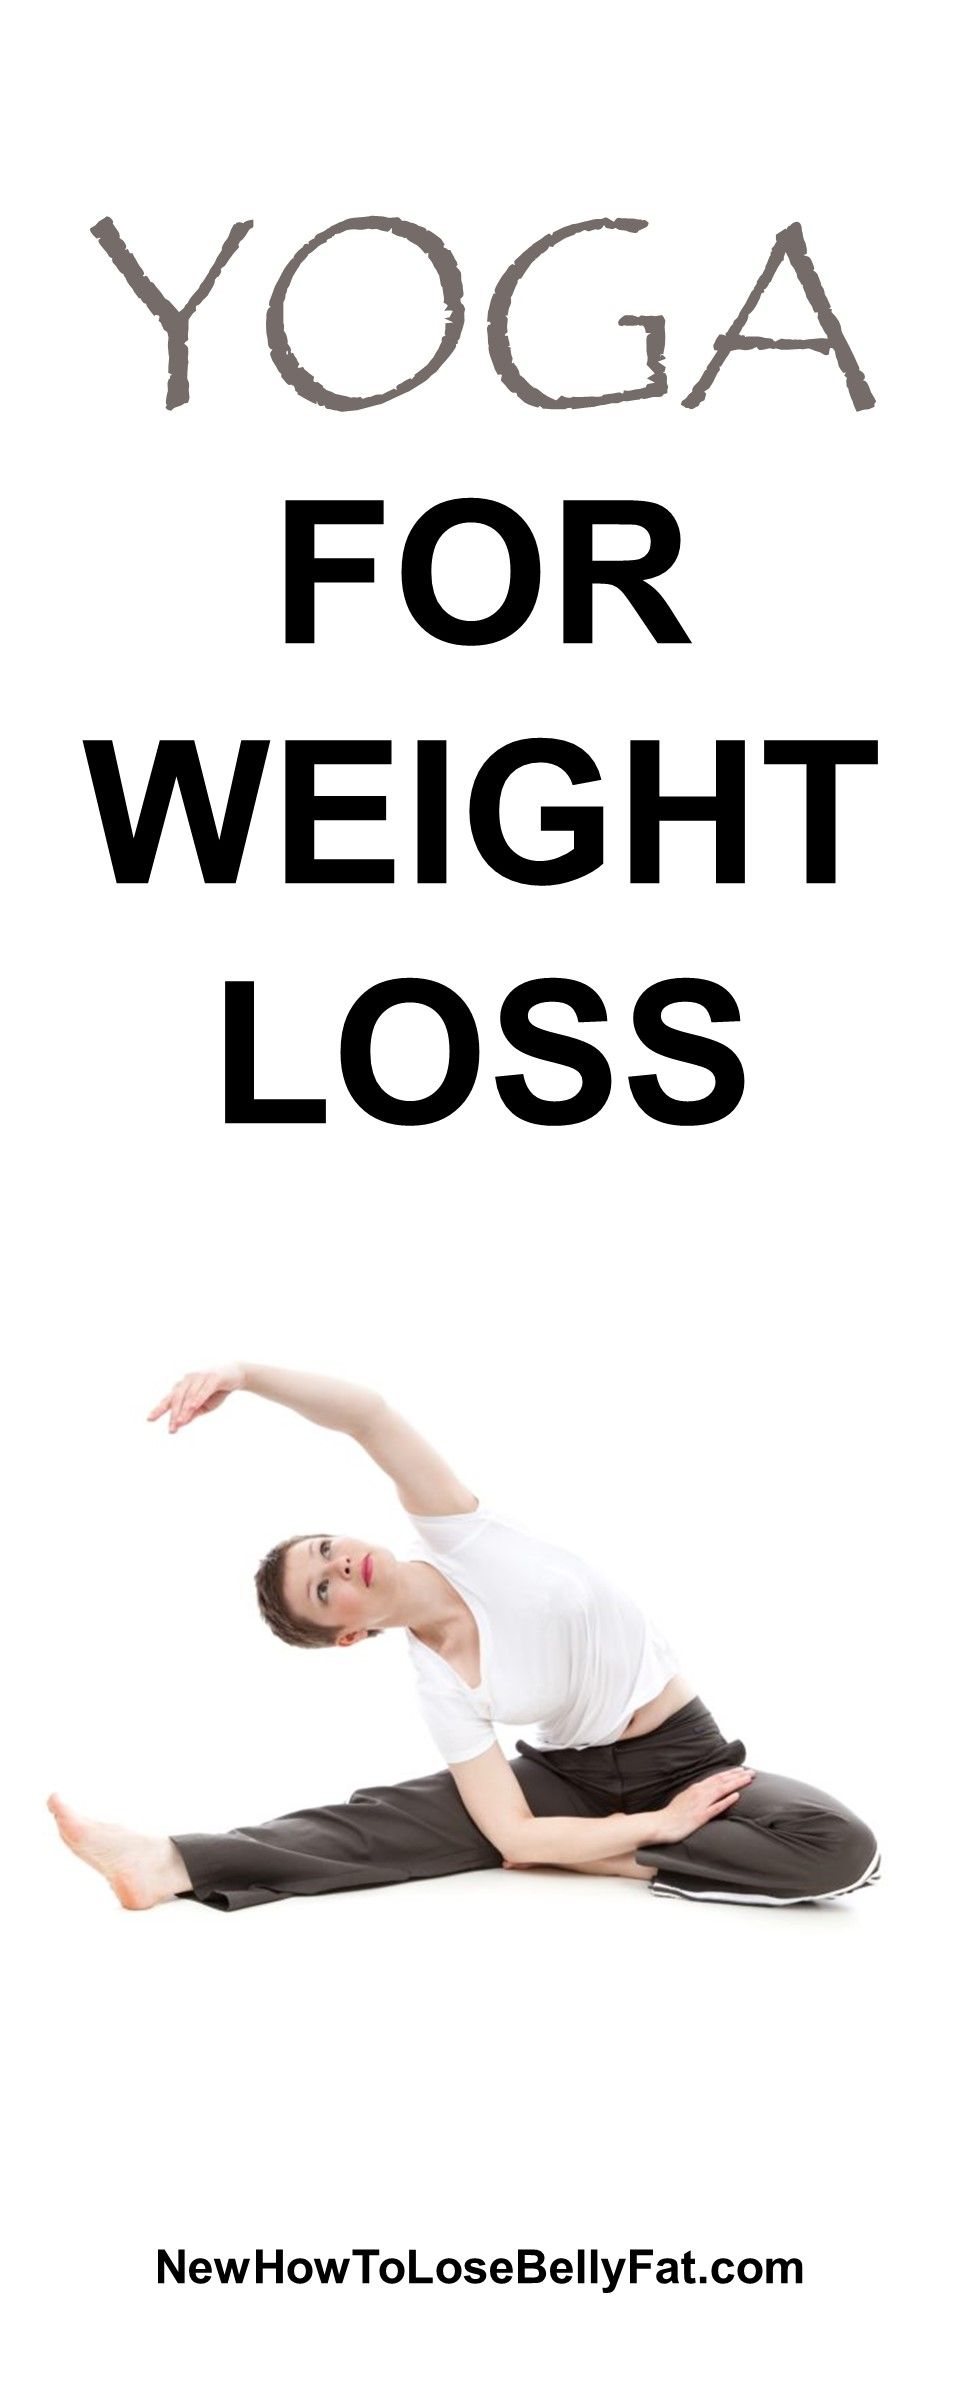 Healthy eating plan to lose weight quickly